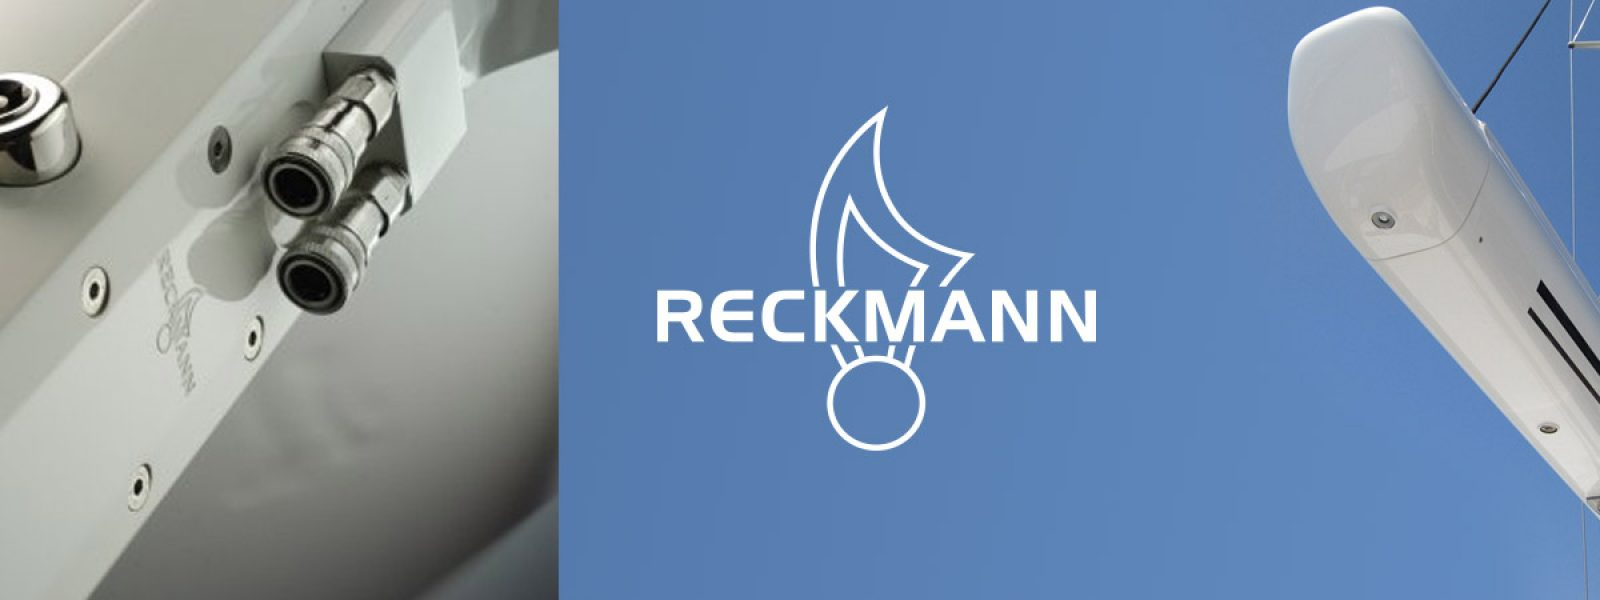 reckmann in mast furling